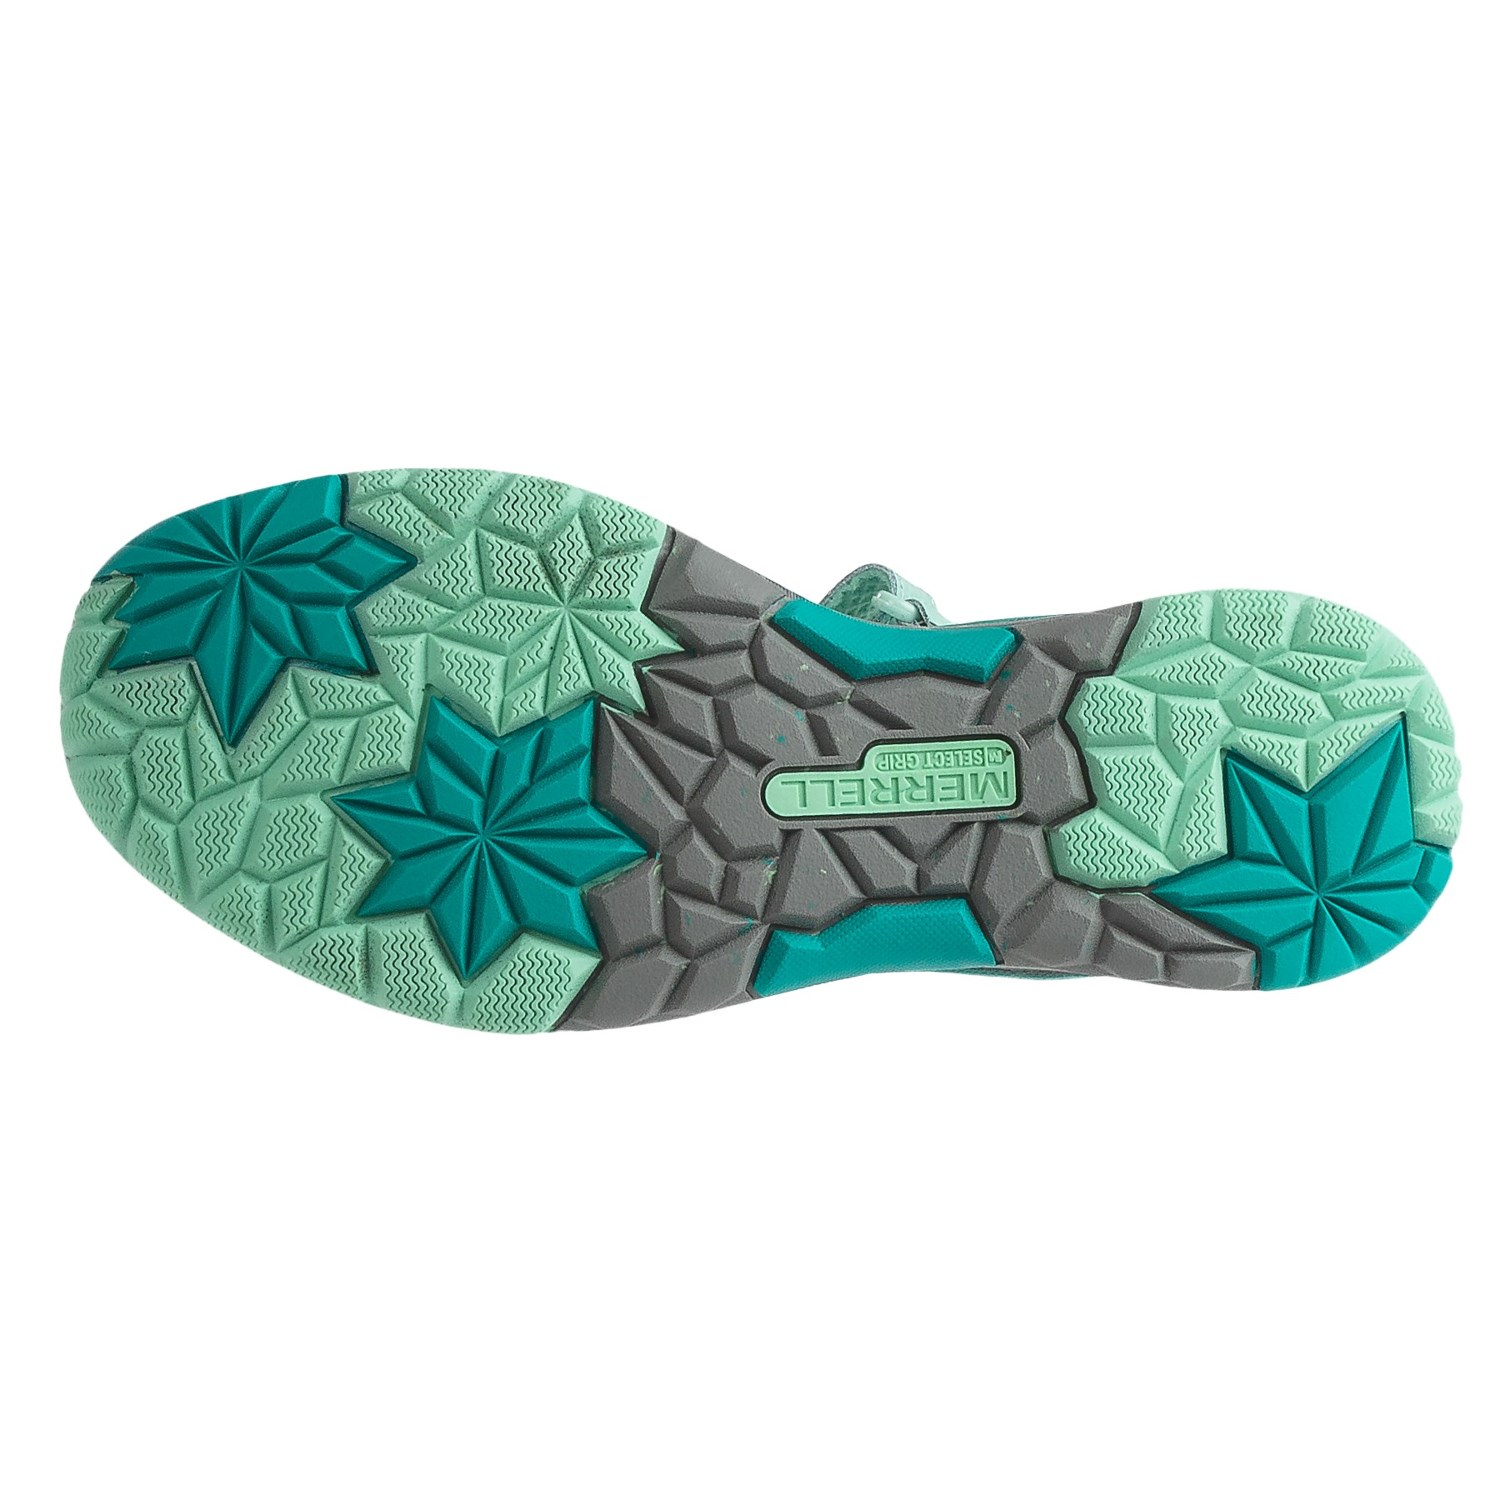 f72eb94af72c Merrell Hydro Monarch Sandals (For Youth Girls) - Save 50%